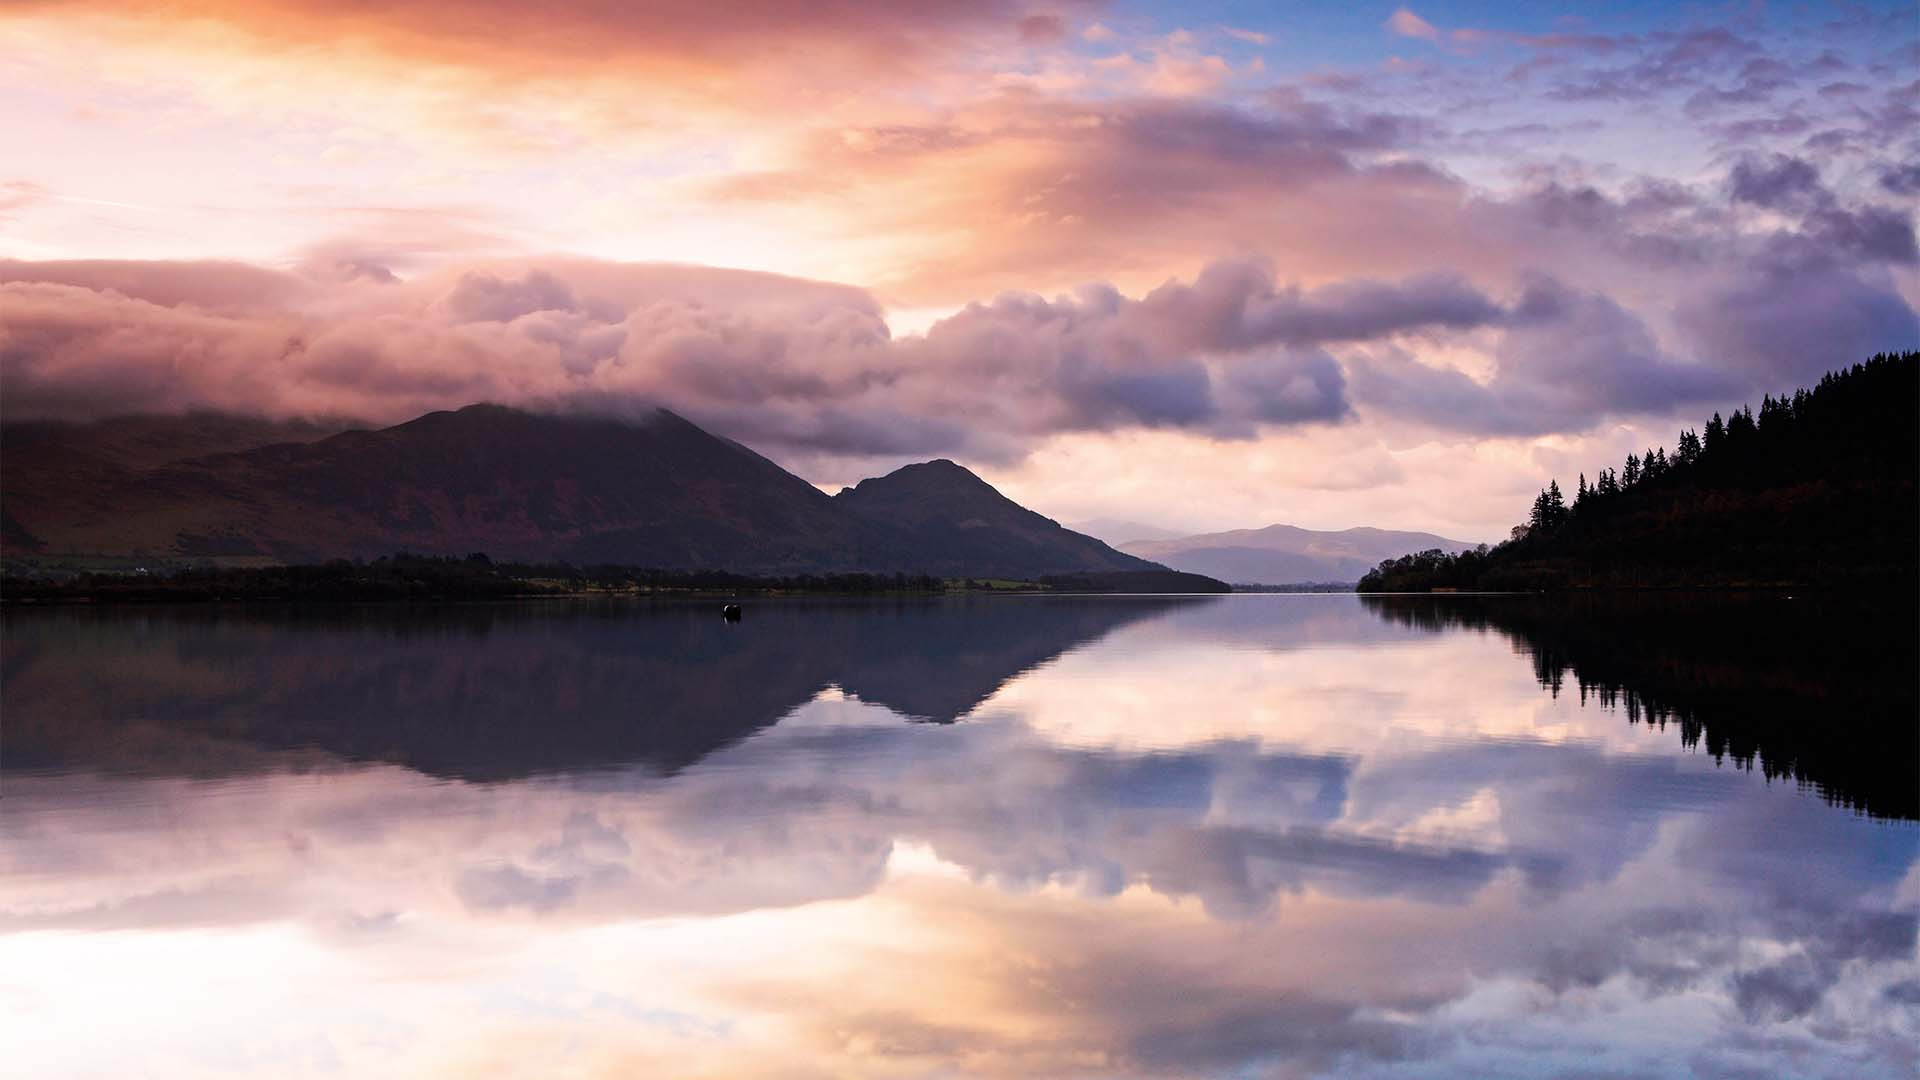 Bassenthwaite Lake from Lakes distillery, Cumbria